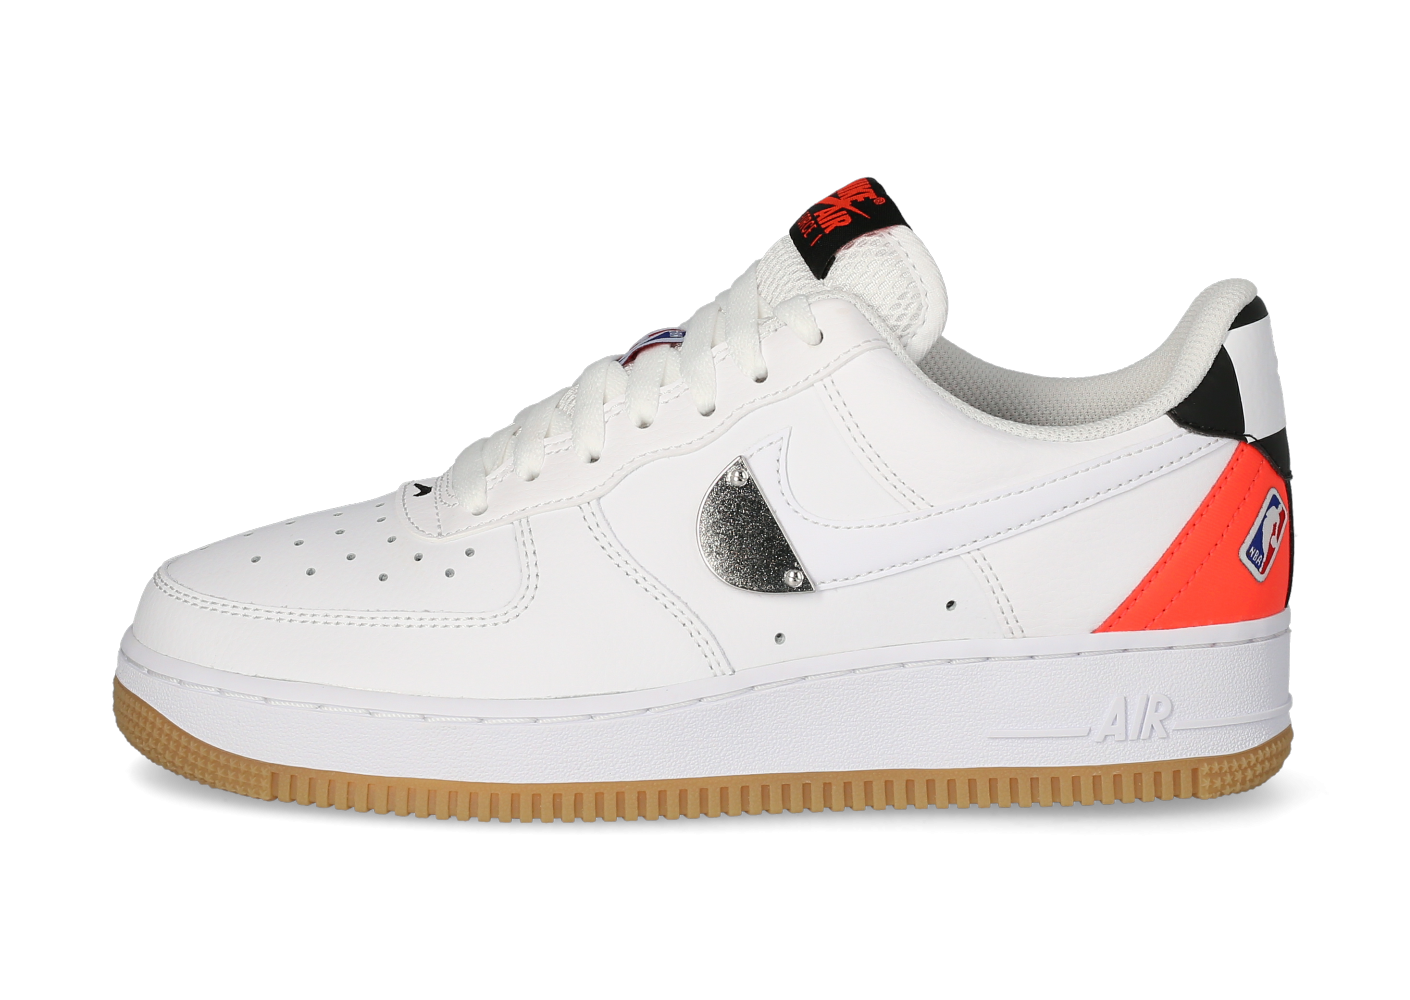 Nike Air Force 1 '07 LV8 NBA - Chaussures Baskets homme - Chausport